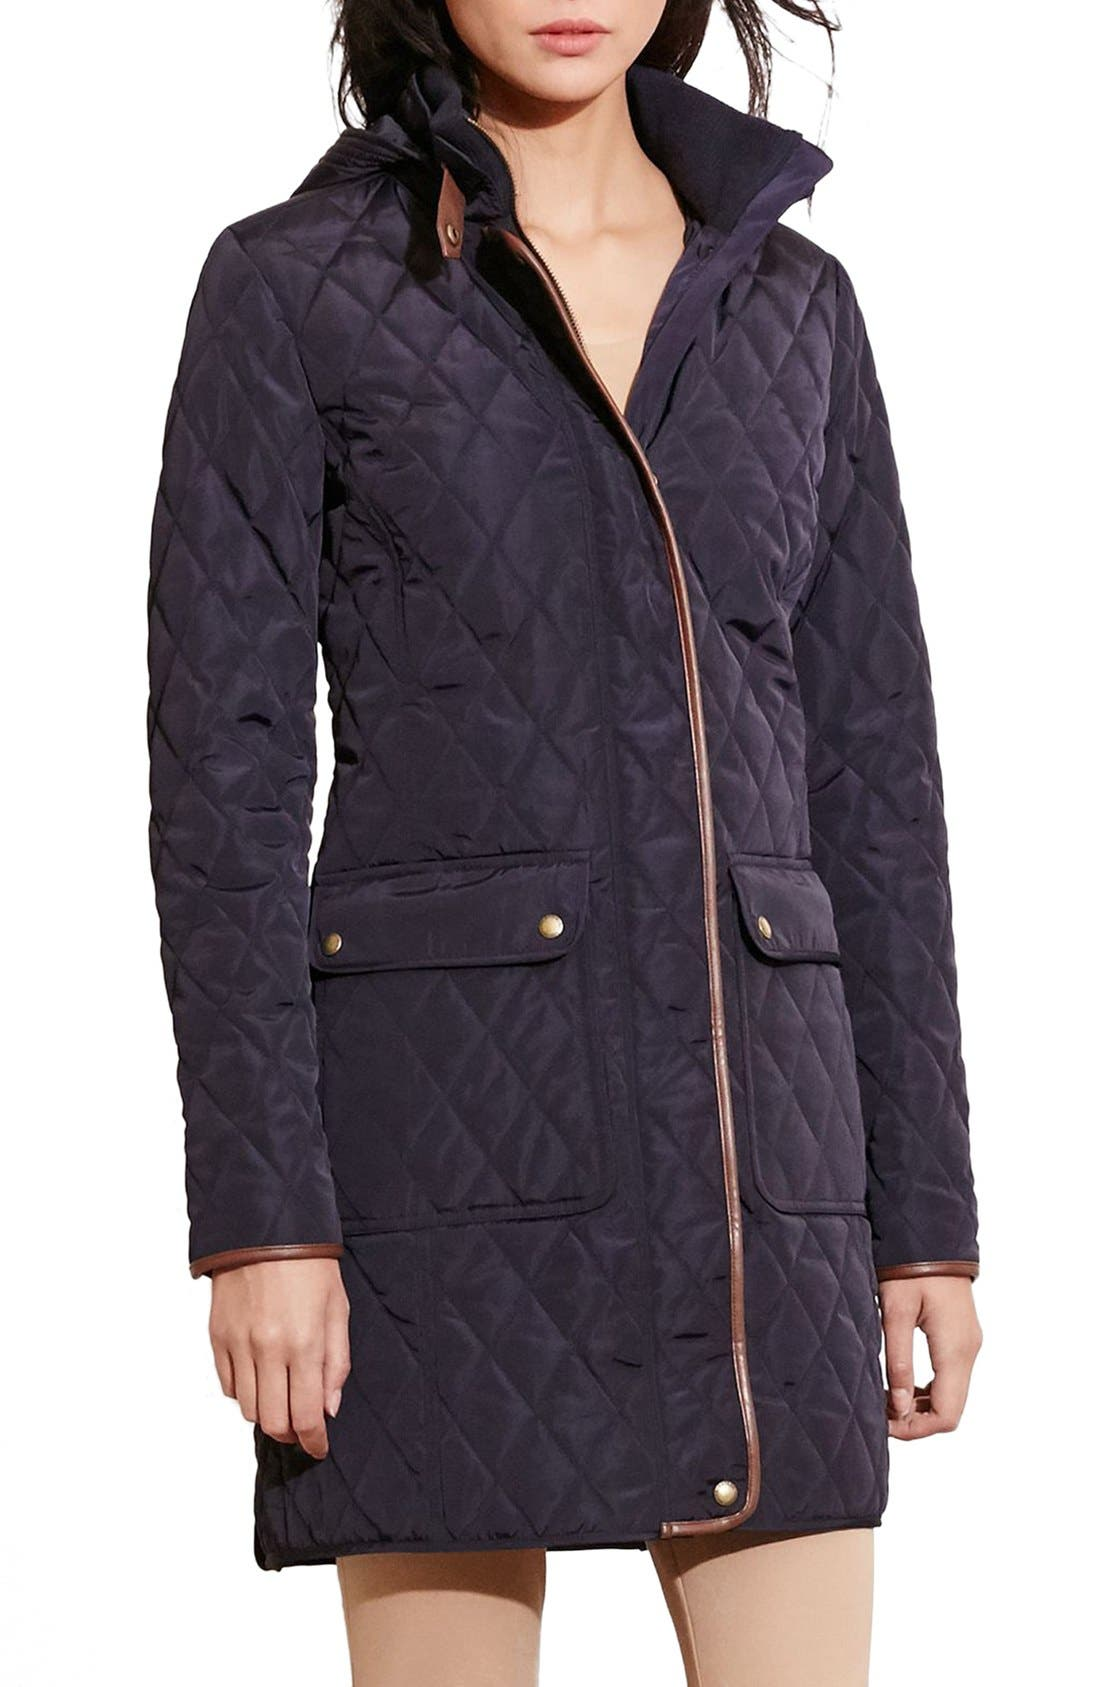 Lauren Ralph Lauren Diamond Quilted Coat with Faux Leather Trim (Regular & Petite)